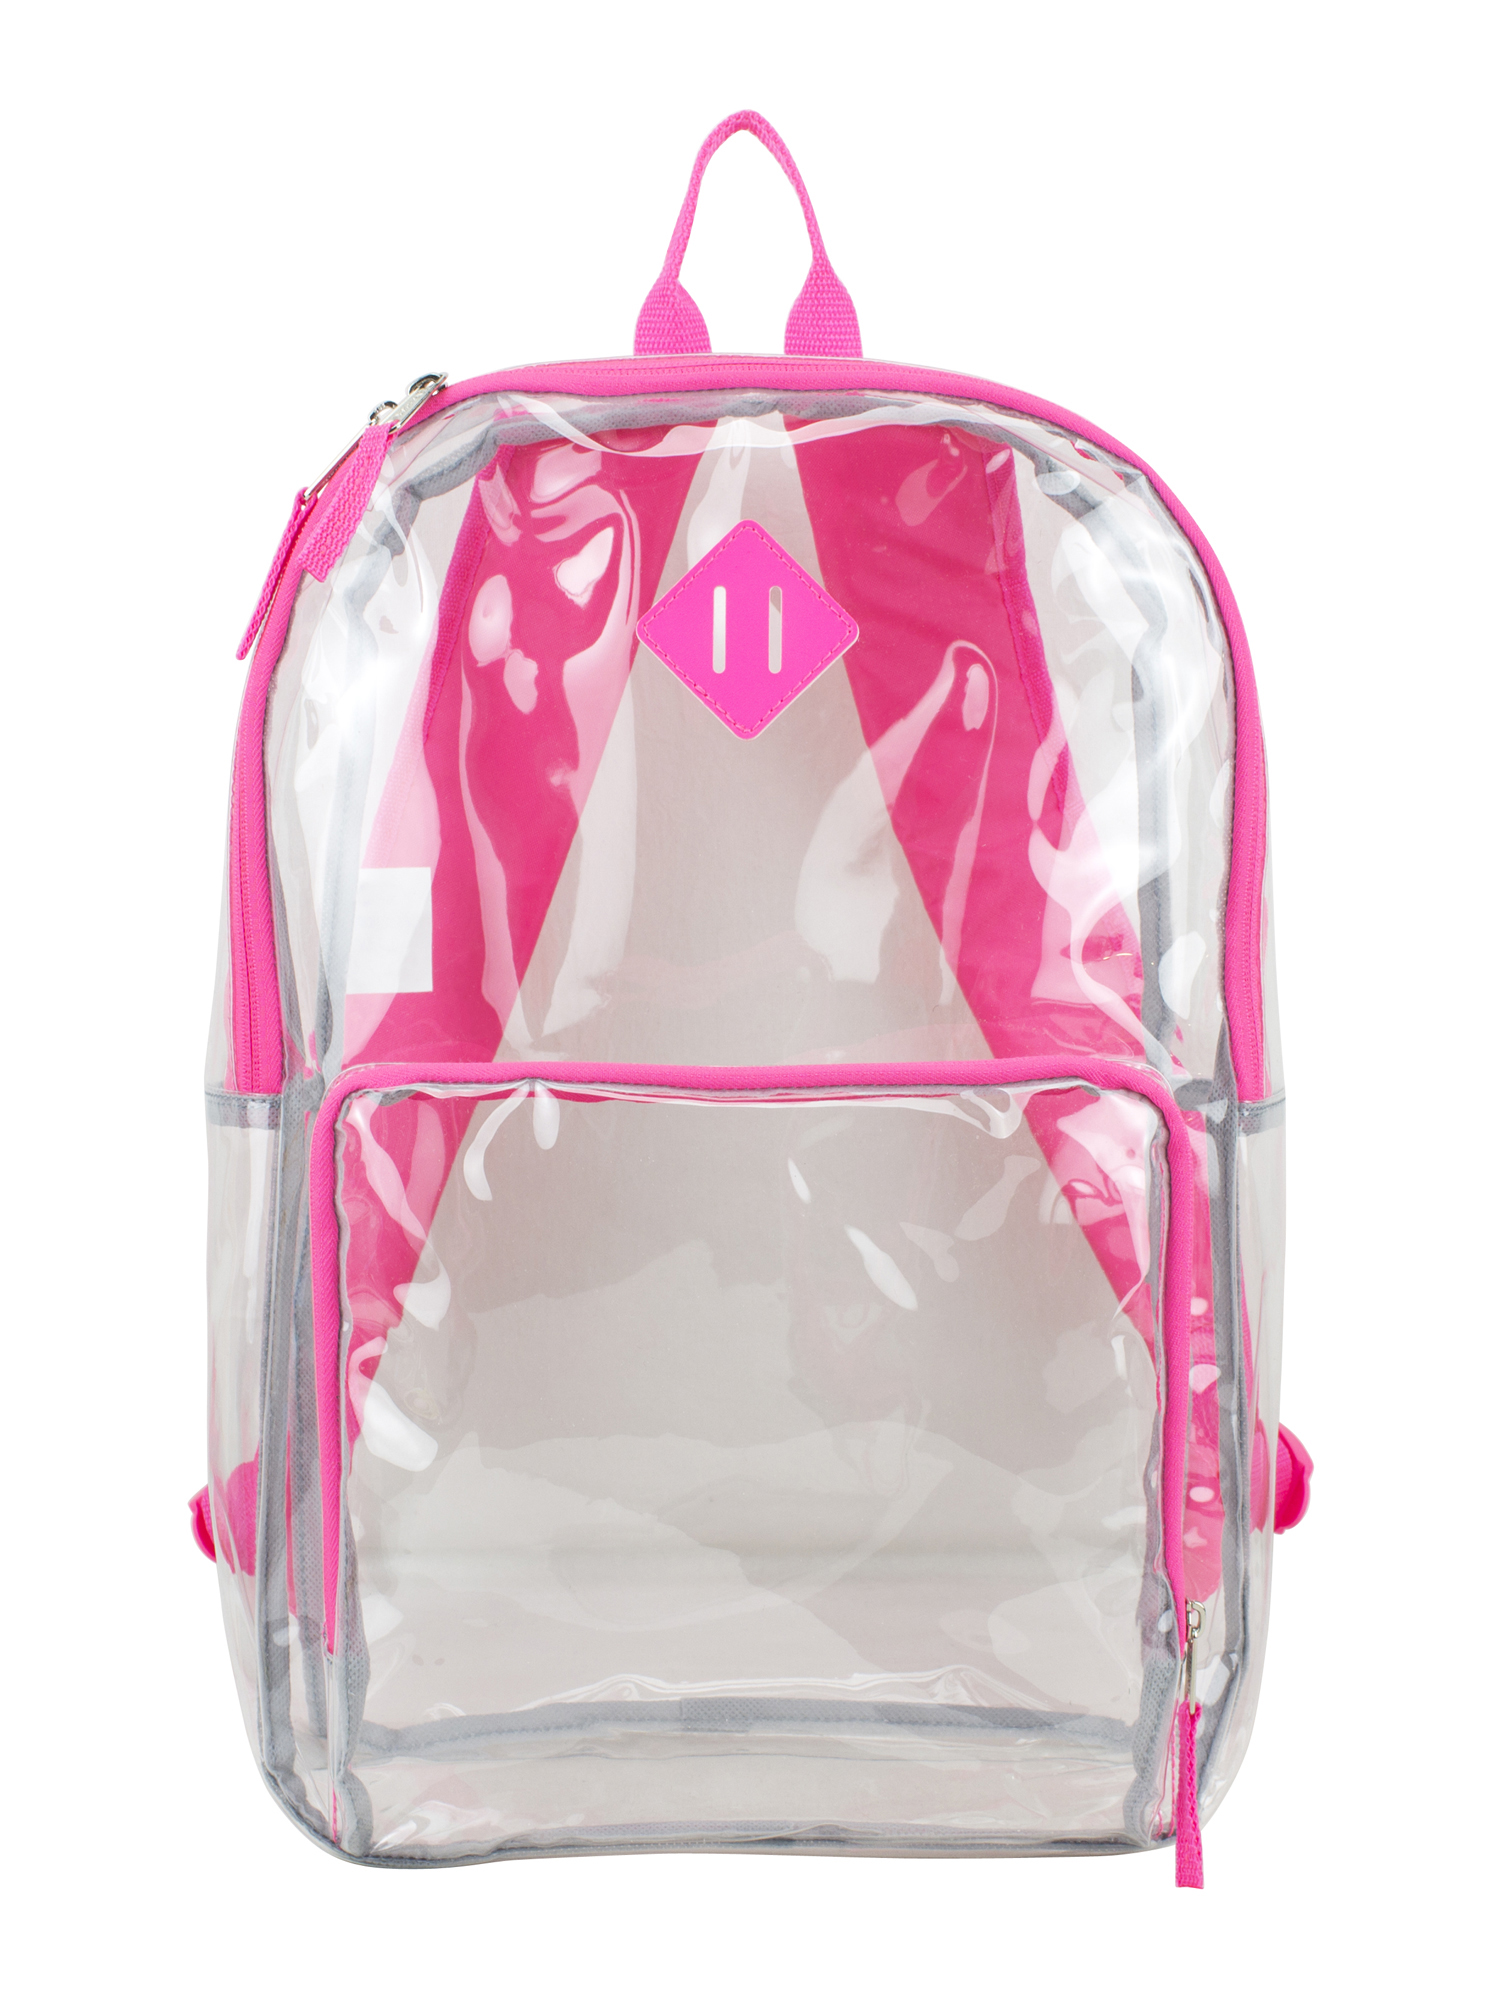 Eastsport - Eastsport Multi-Purpose Clear Backpack with Front Pocket ... 7f3b784b9049c